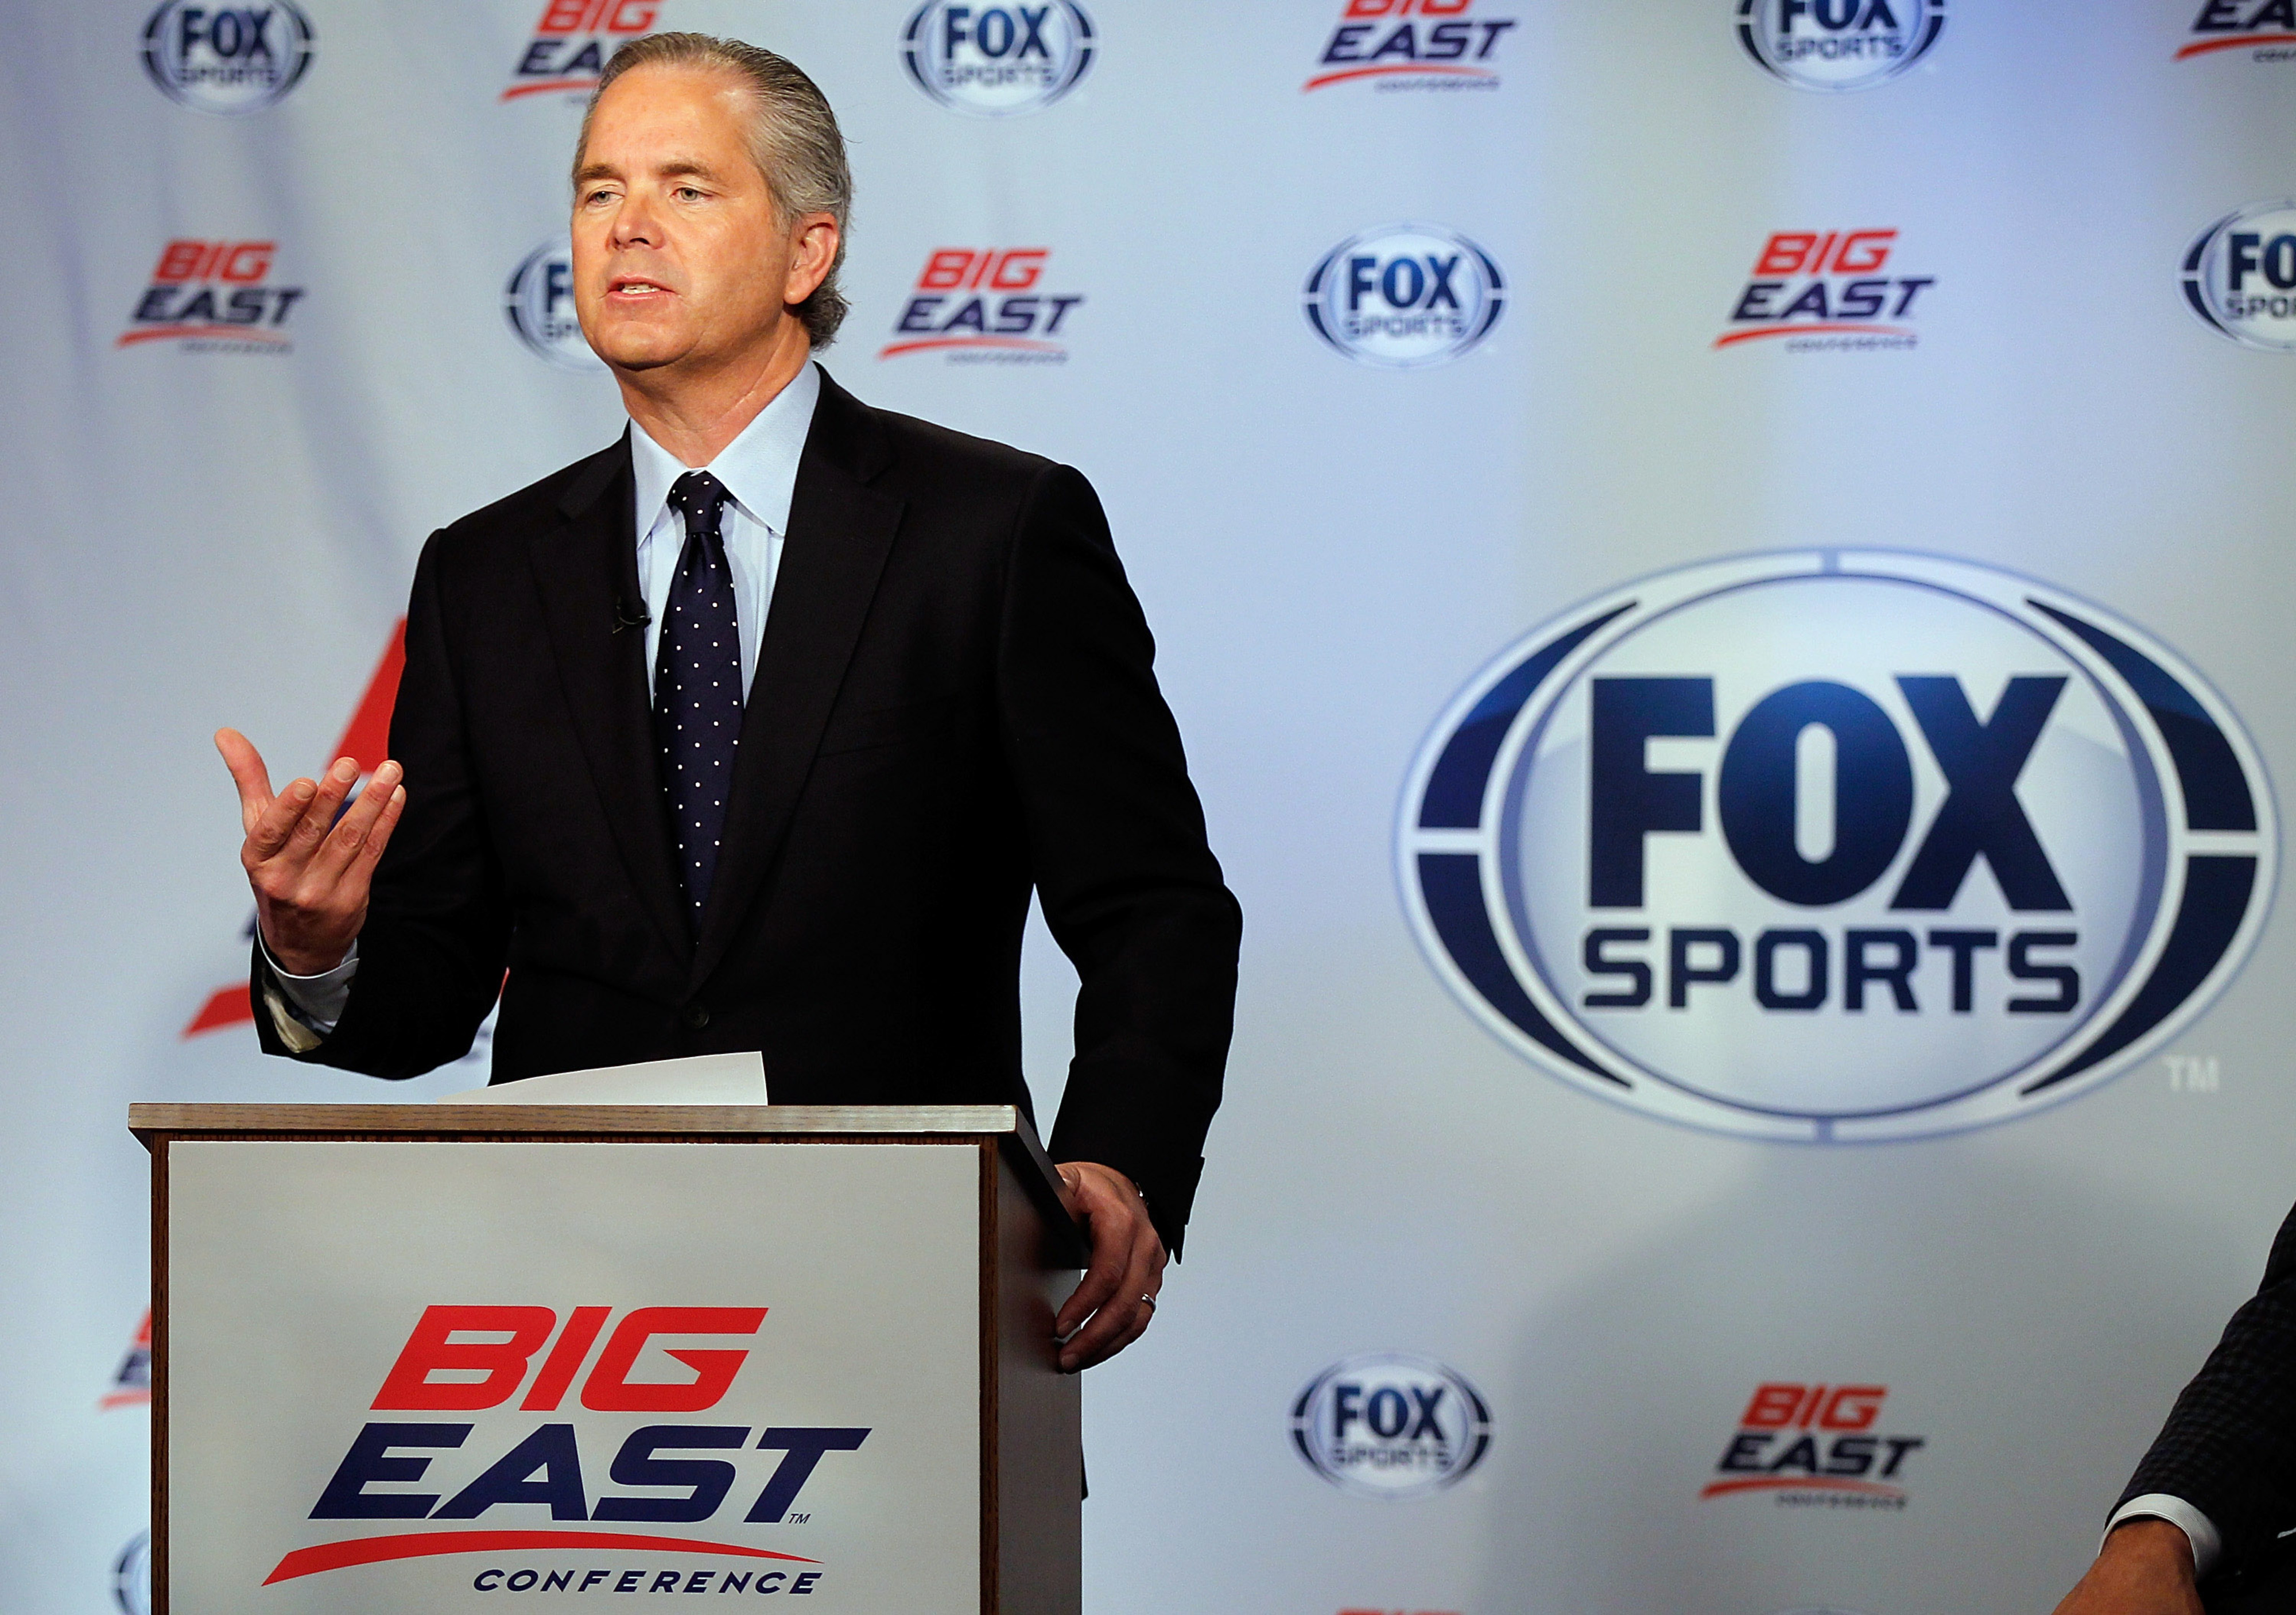 How does the nation's top analyst see the Big East this year?